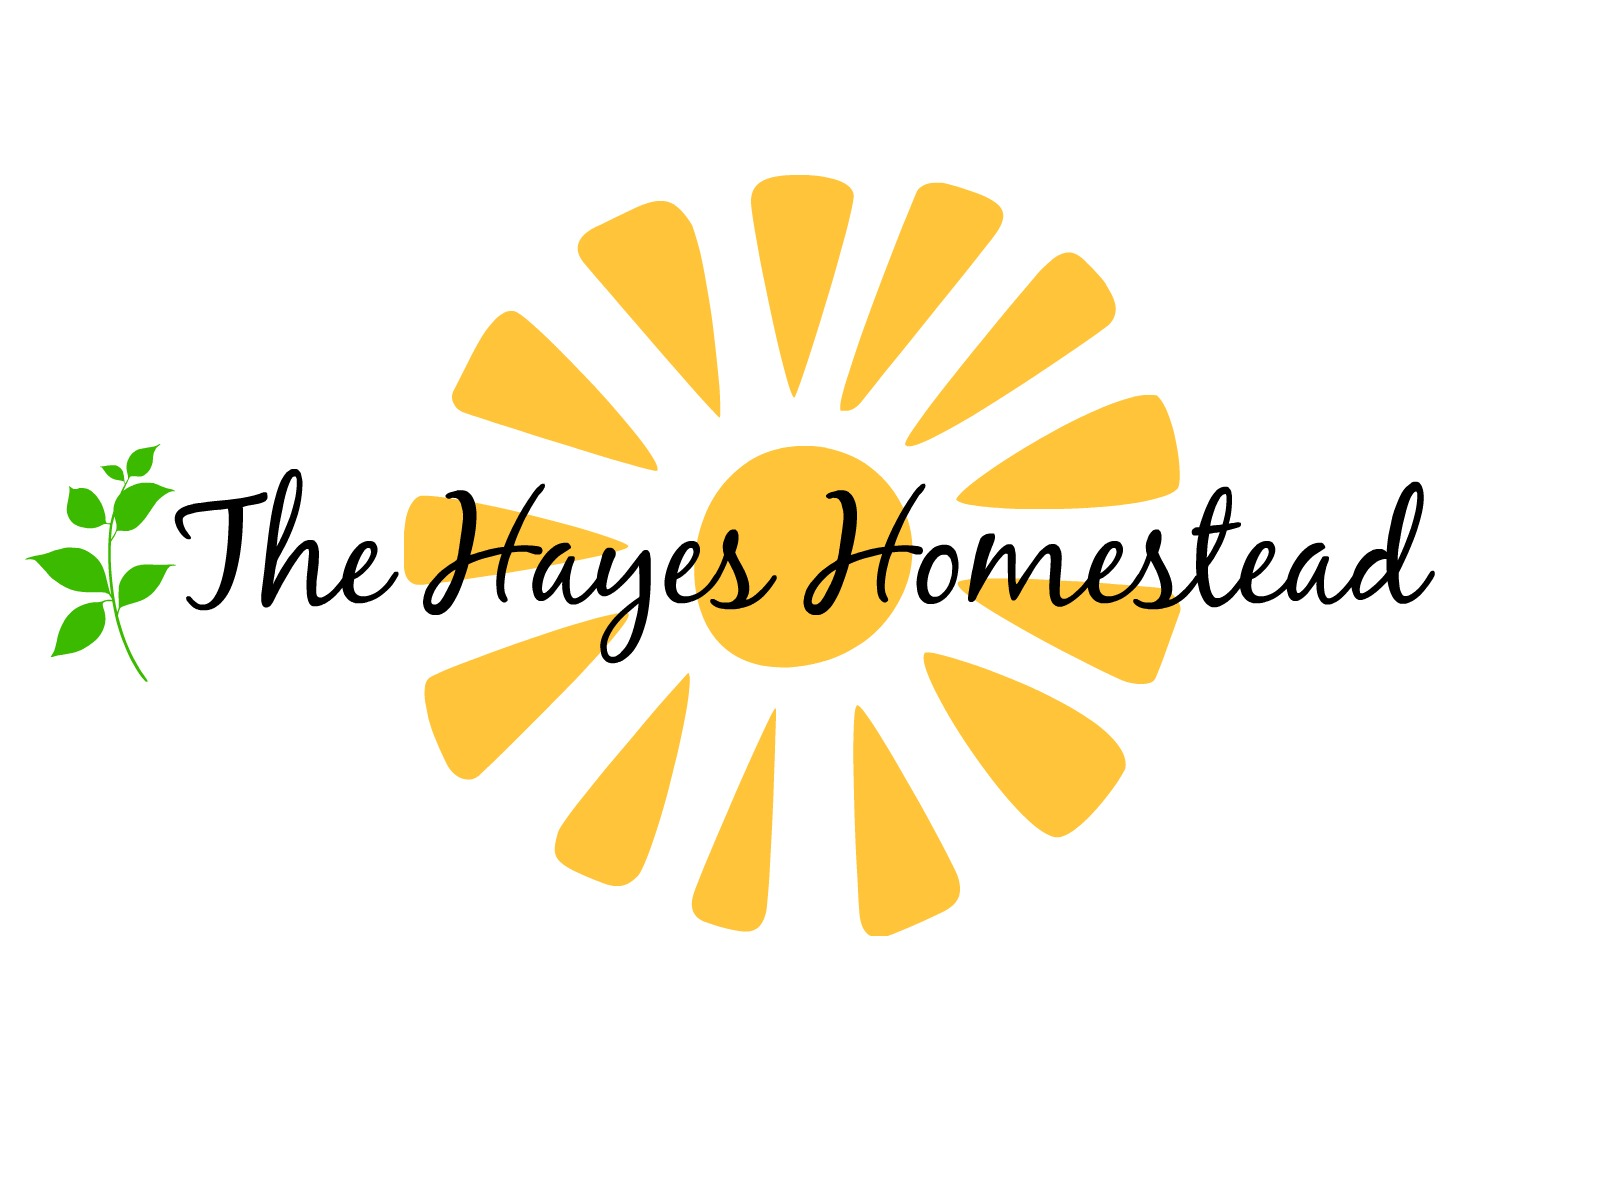 The Hayes Homestead